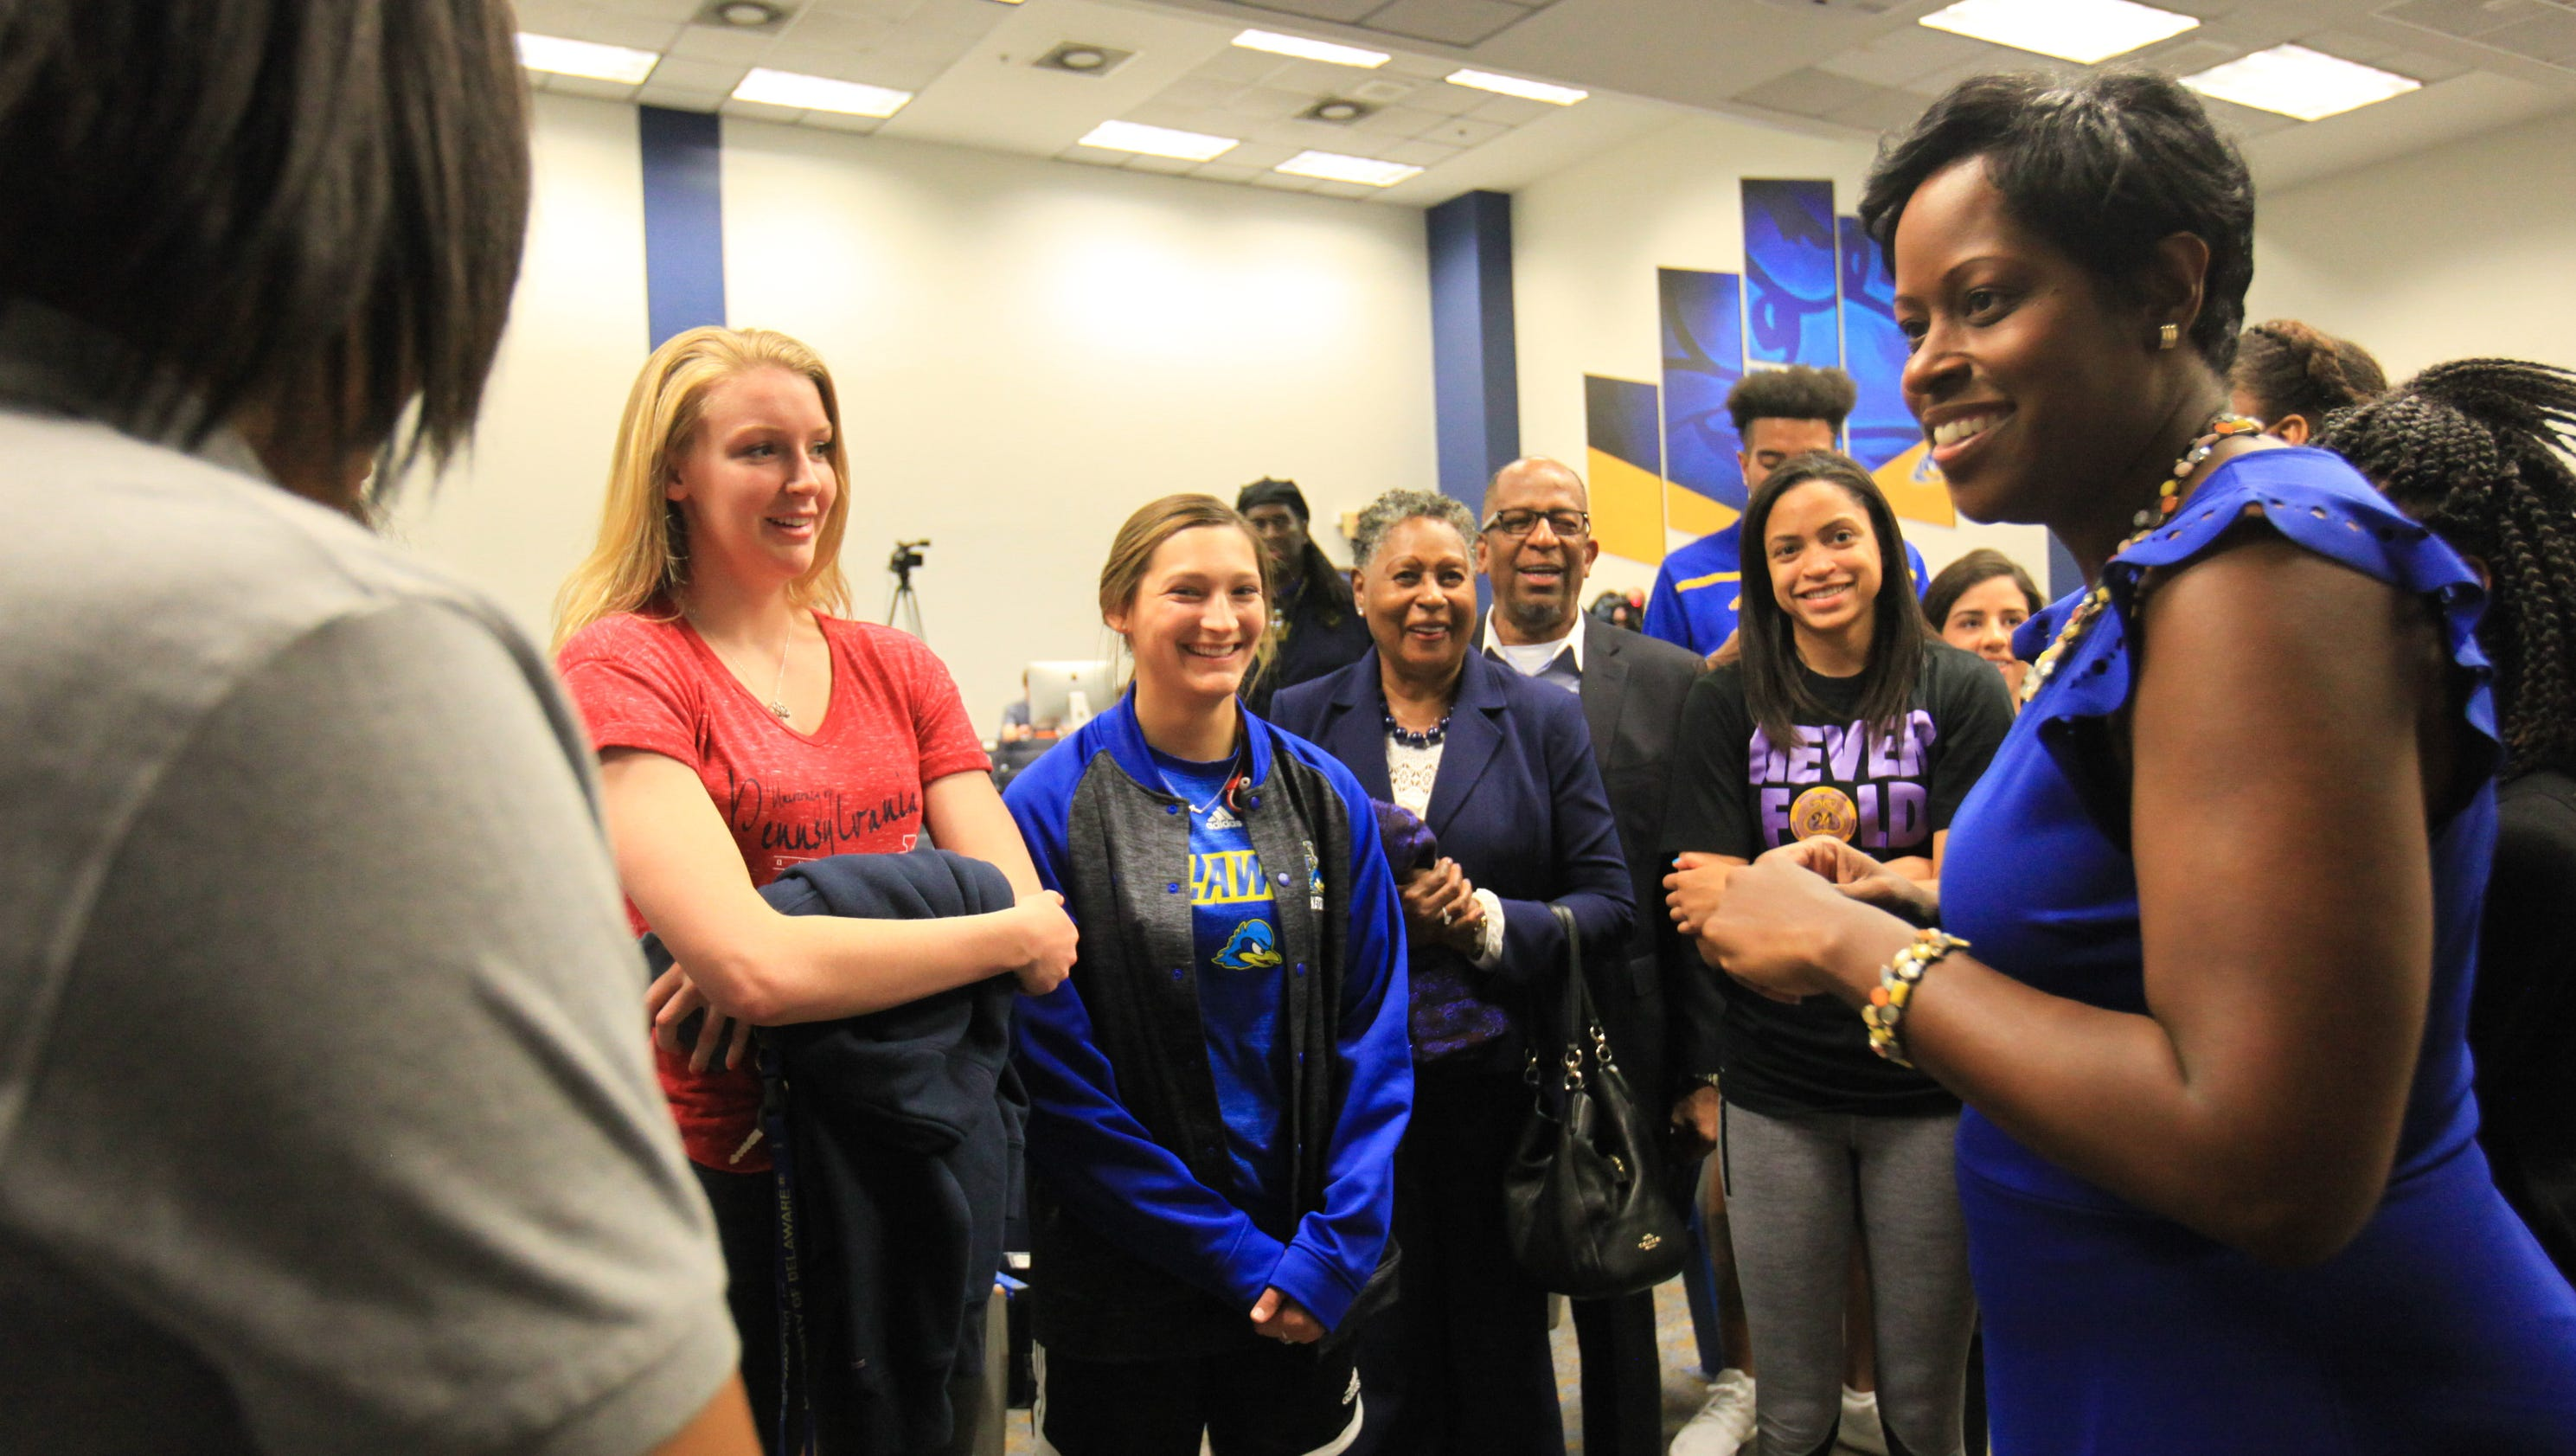 Adair introduced as Delaware women's basketball coach